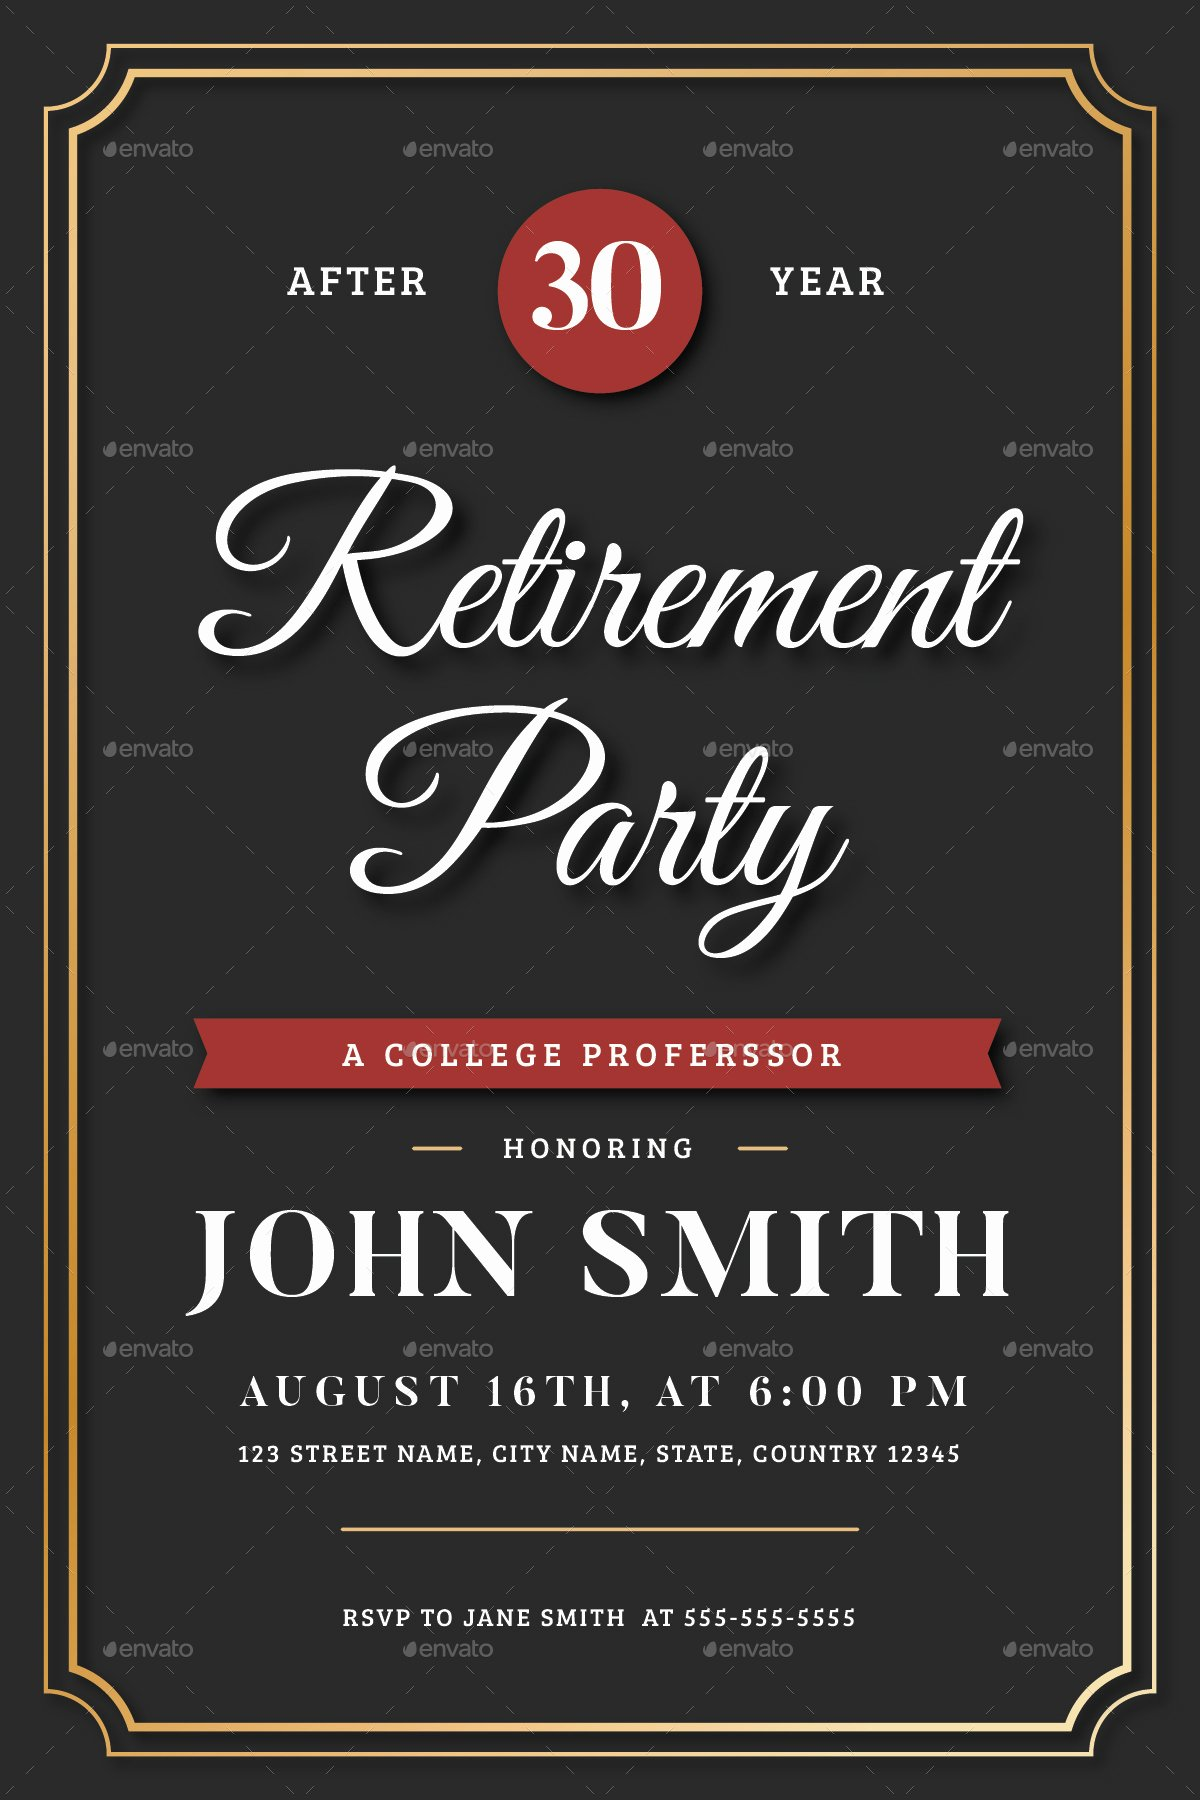 Retirement Party Flyer Template Free Luxury Retirement Invitation Flyer Templates by Vynetta